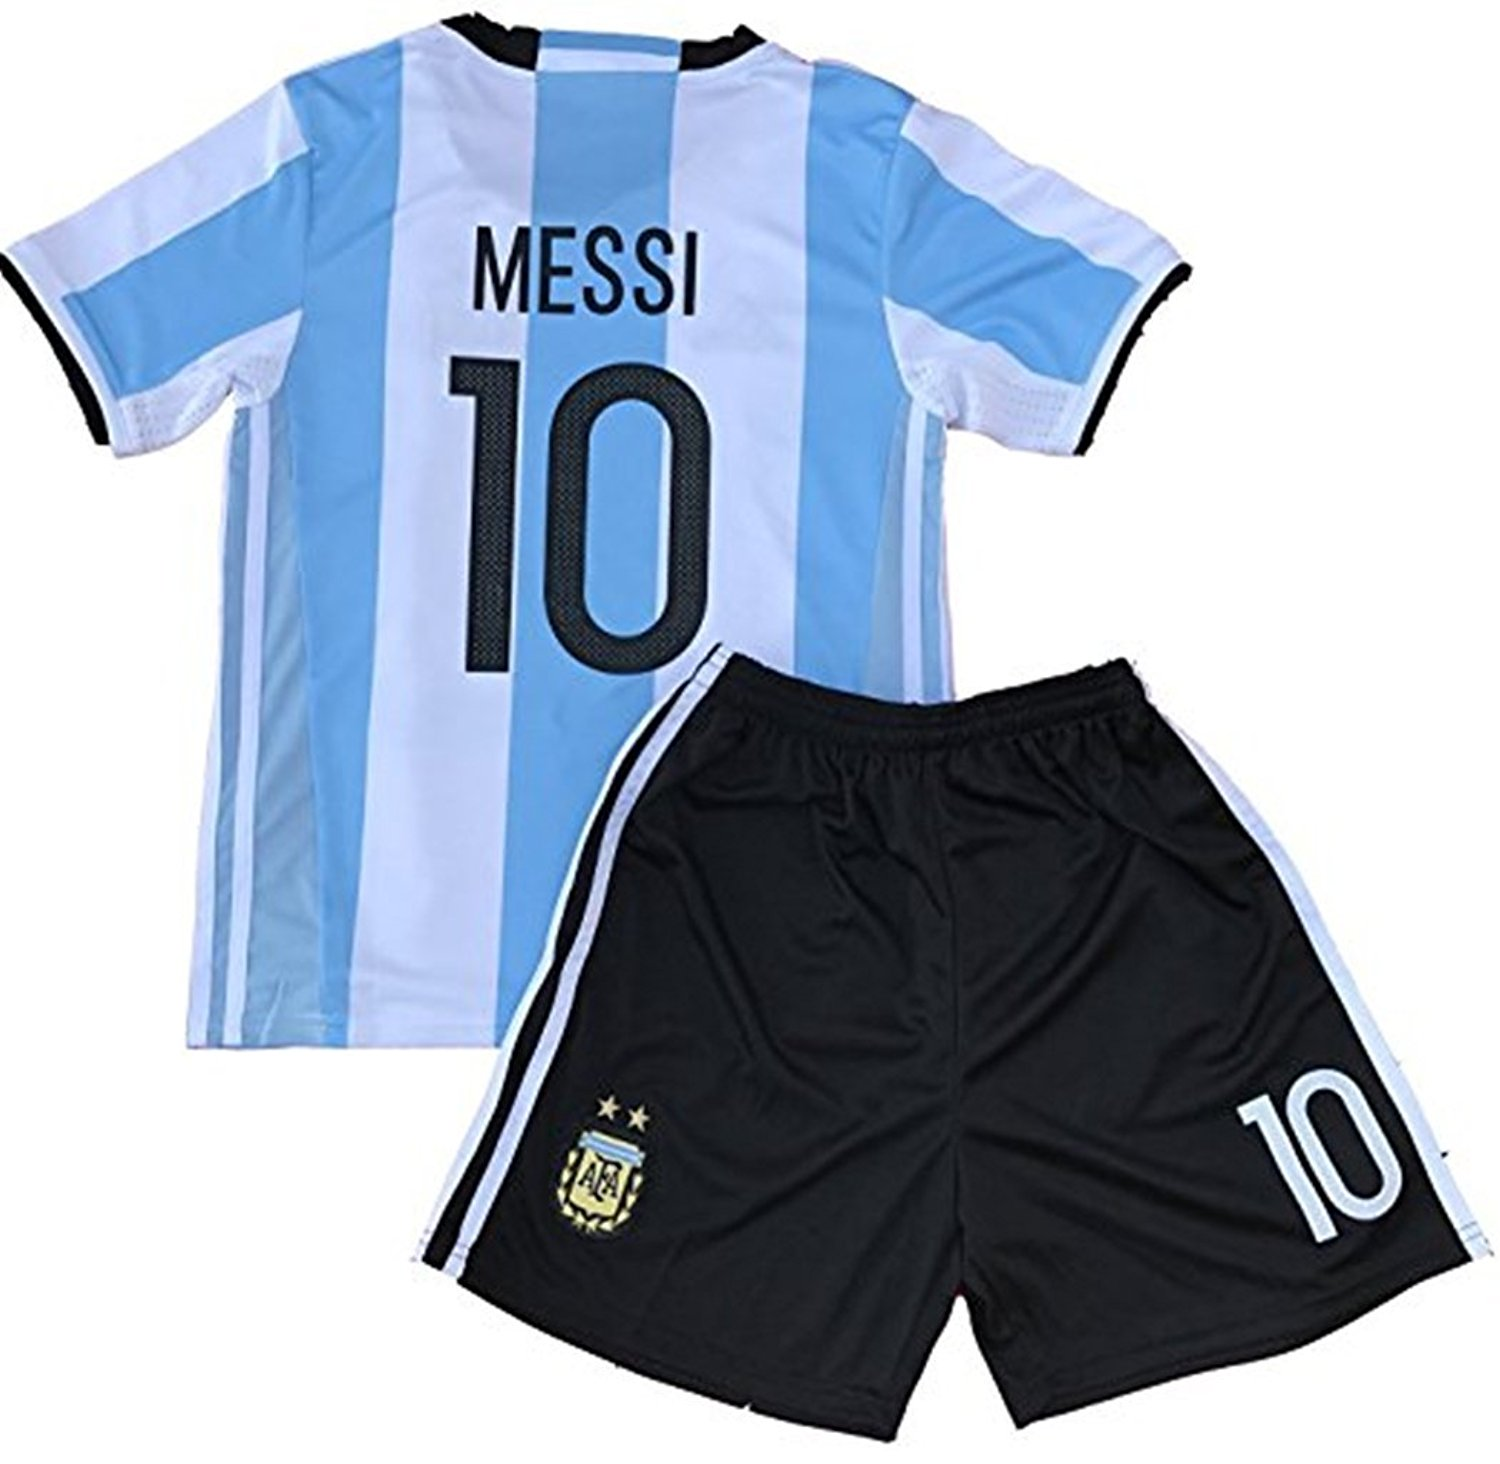 best sneakers e1008 4c221 Cheap messi youth jersey, find messi youth jersey deals on ...